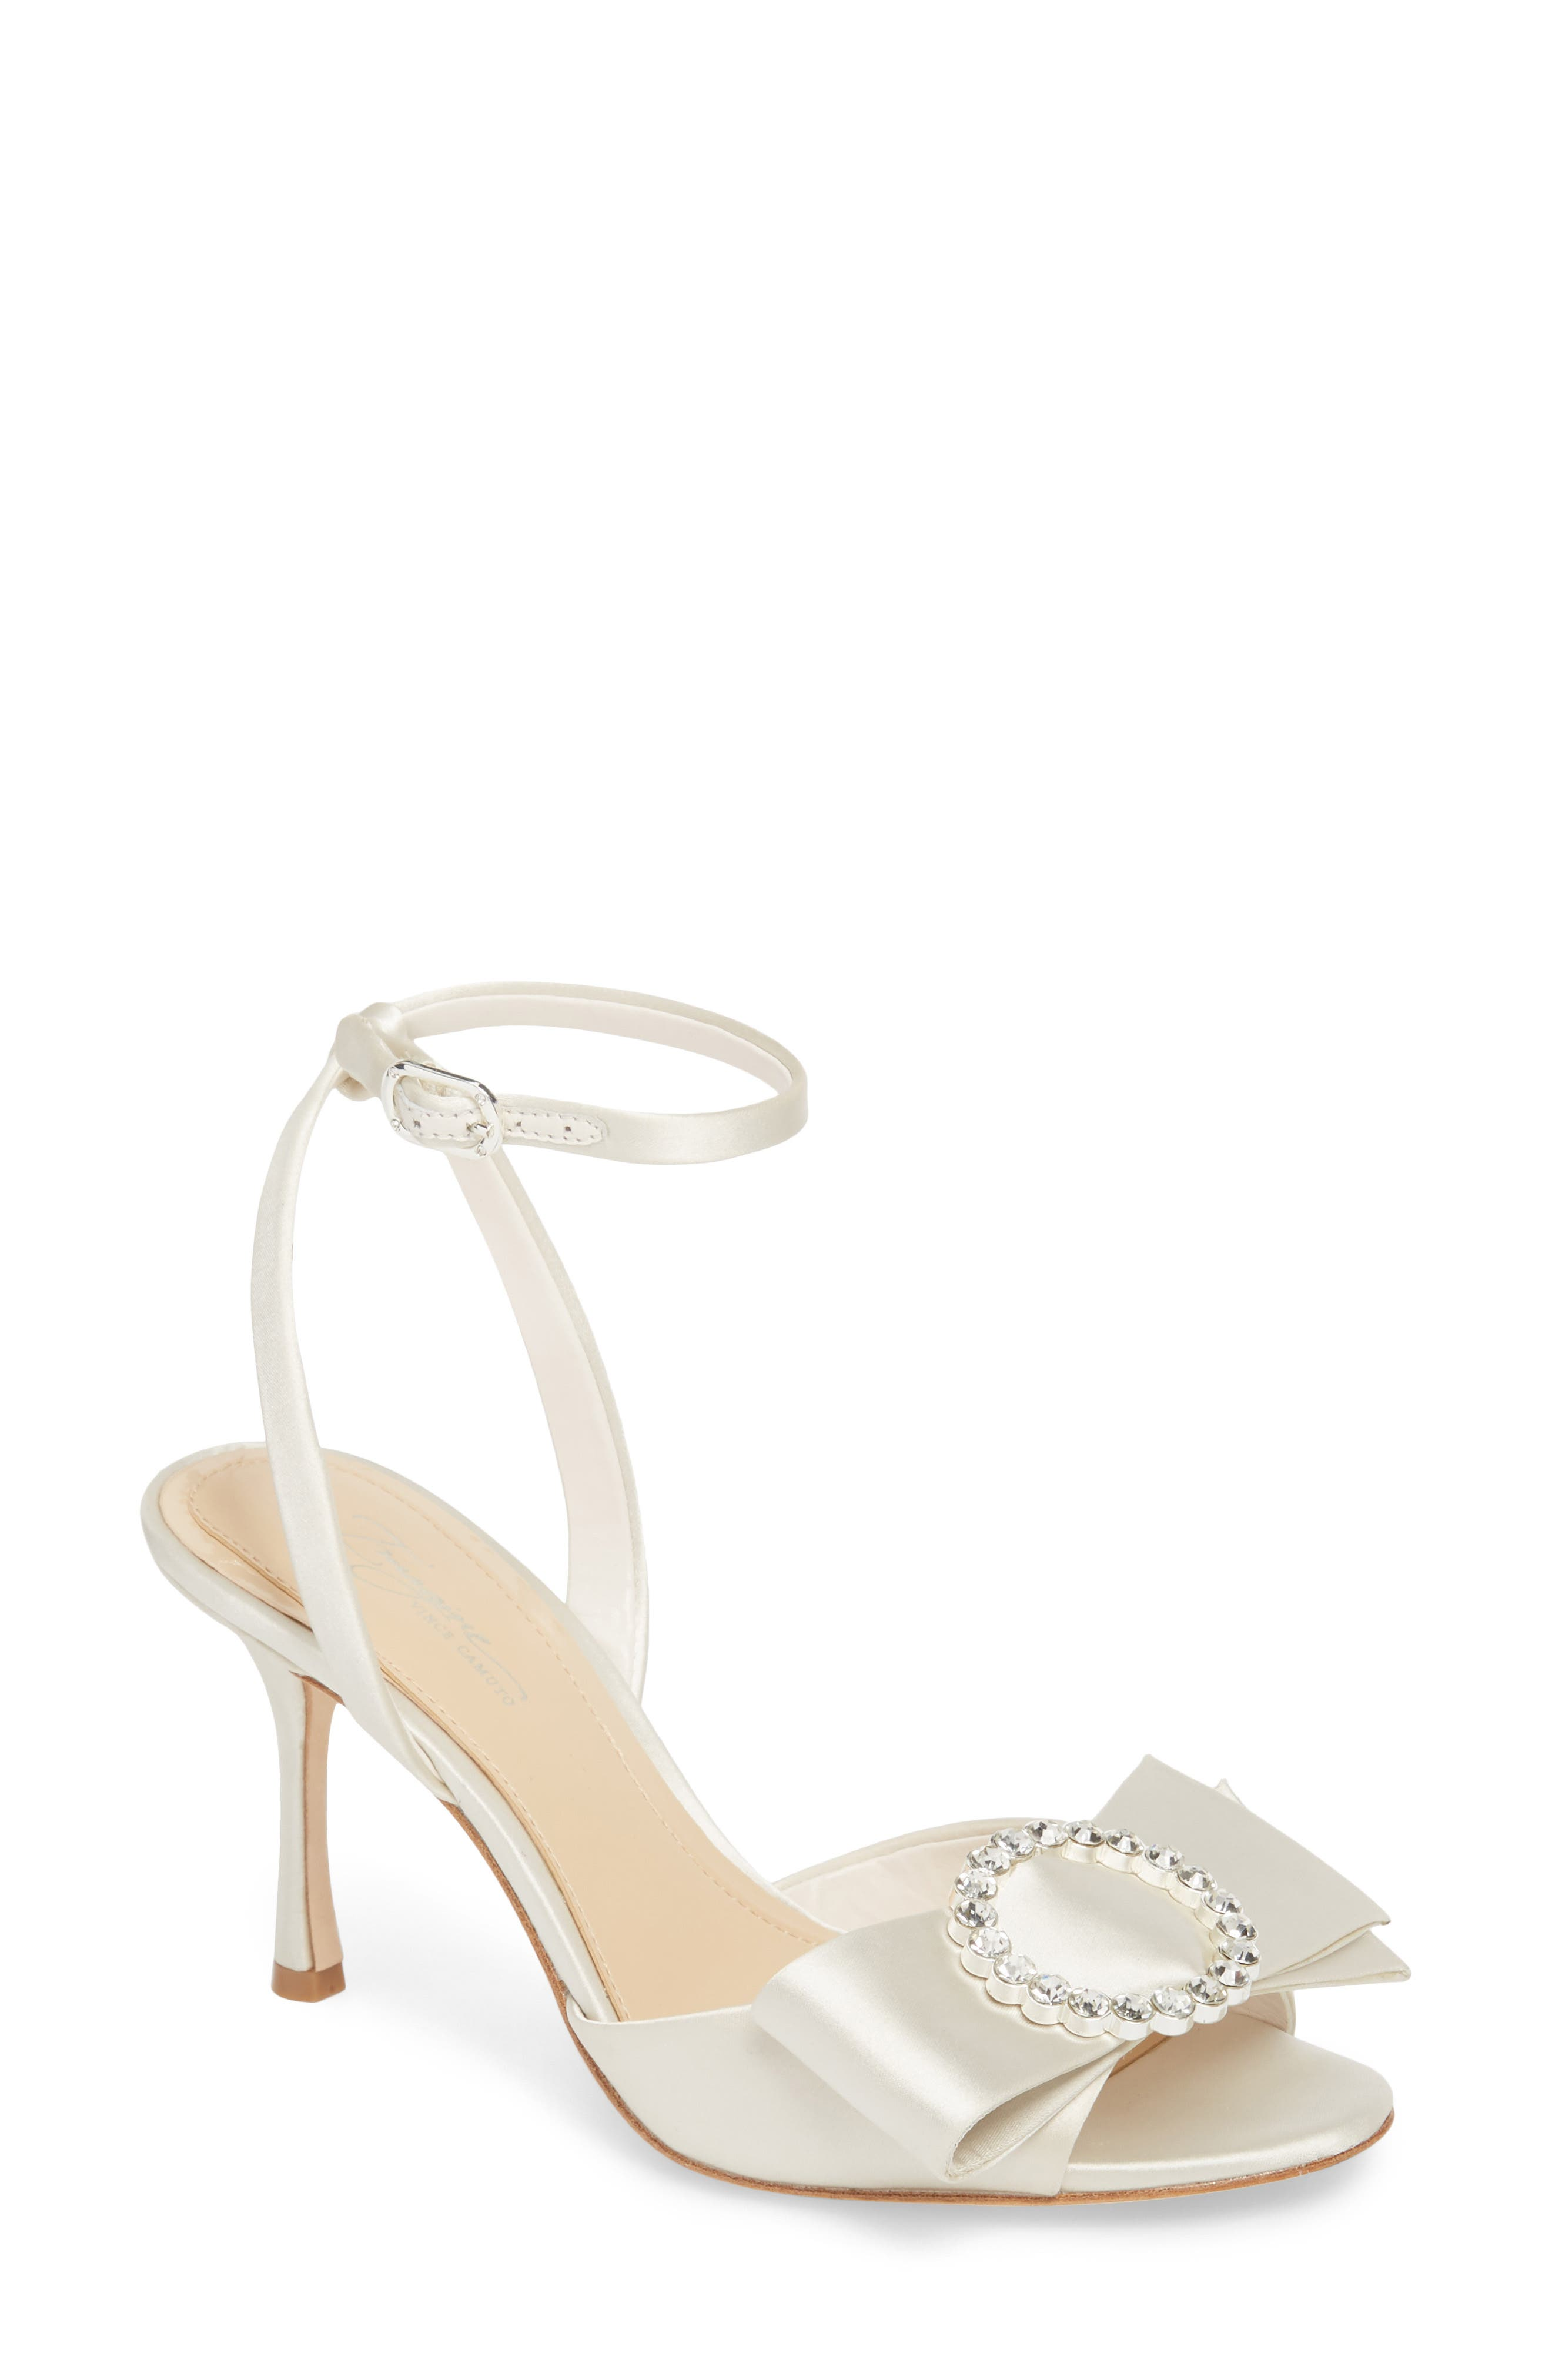 Imagine By Vince Camuto Belia Sandal- White